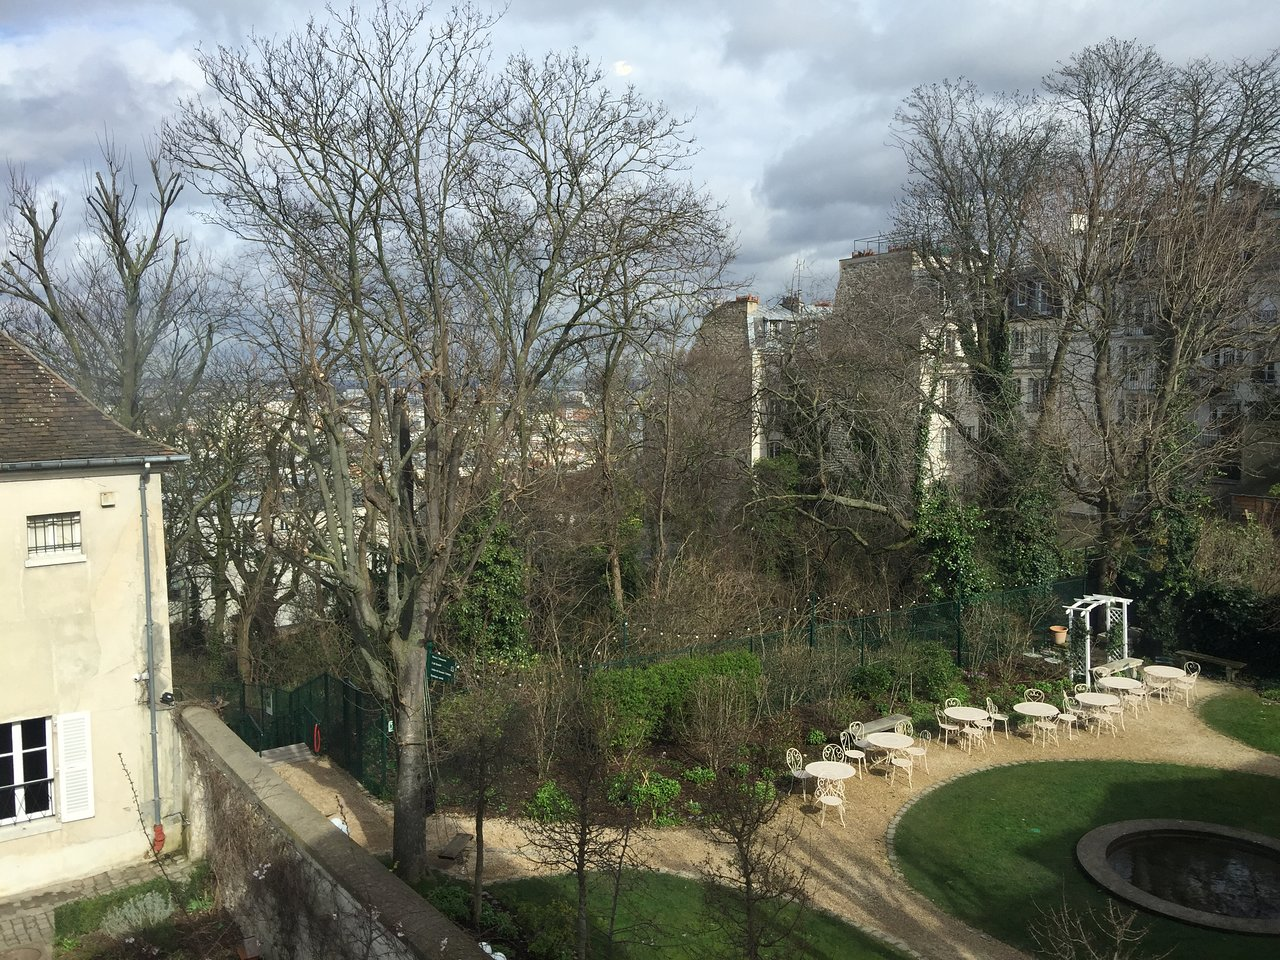 Blatte Jardin Charmant Musee De Montmartre Paris 2020 All You Need to Know Of 70 Luxe Blatte Jardin